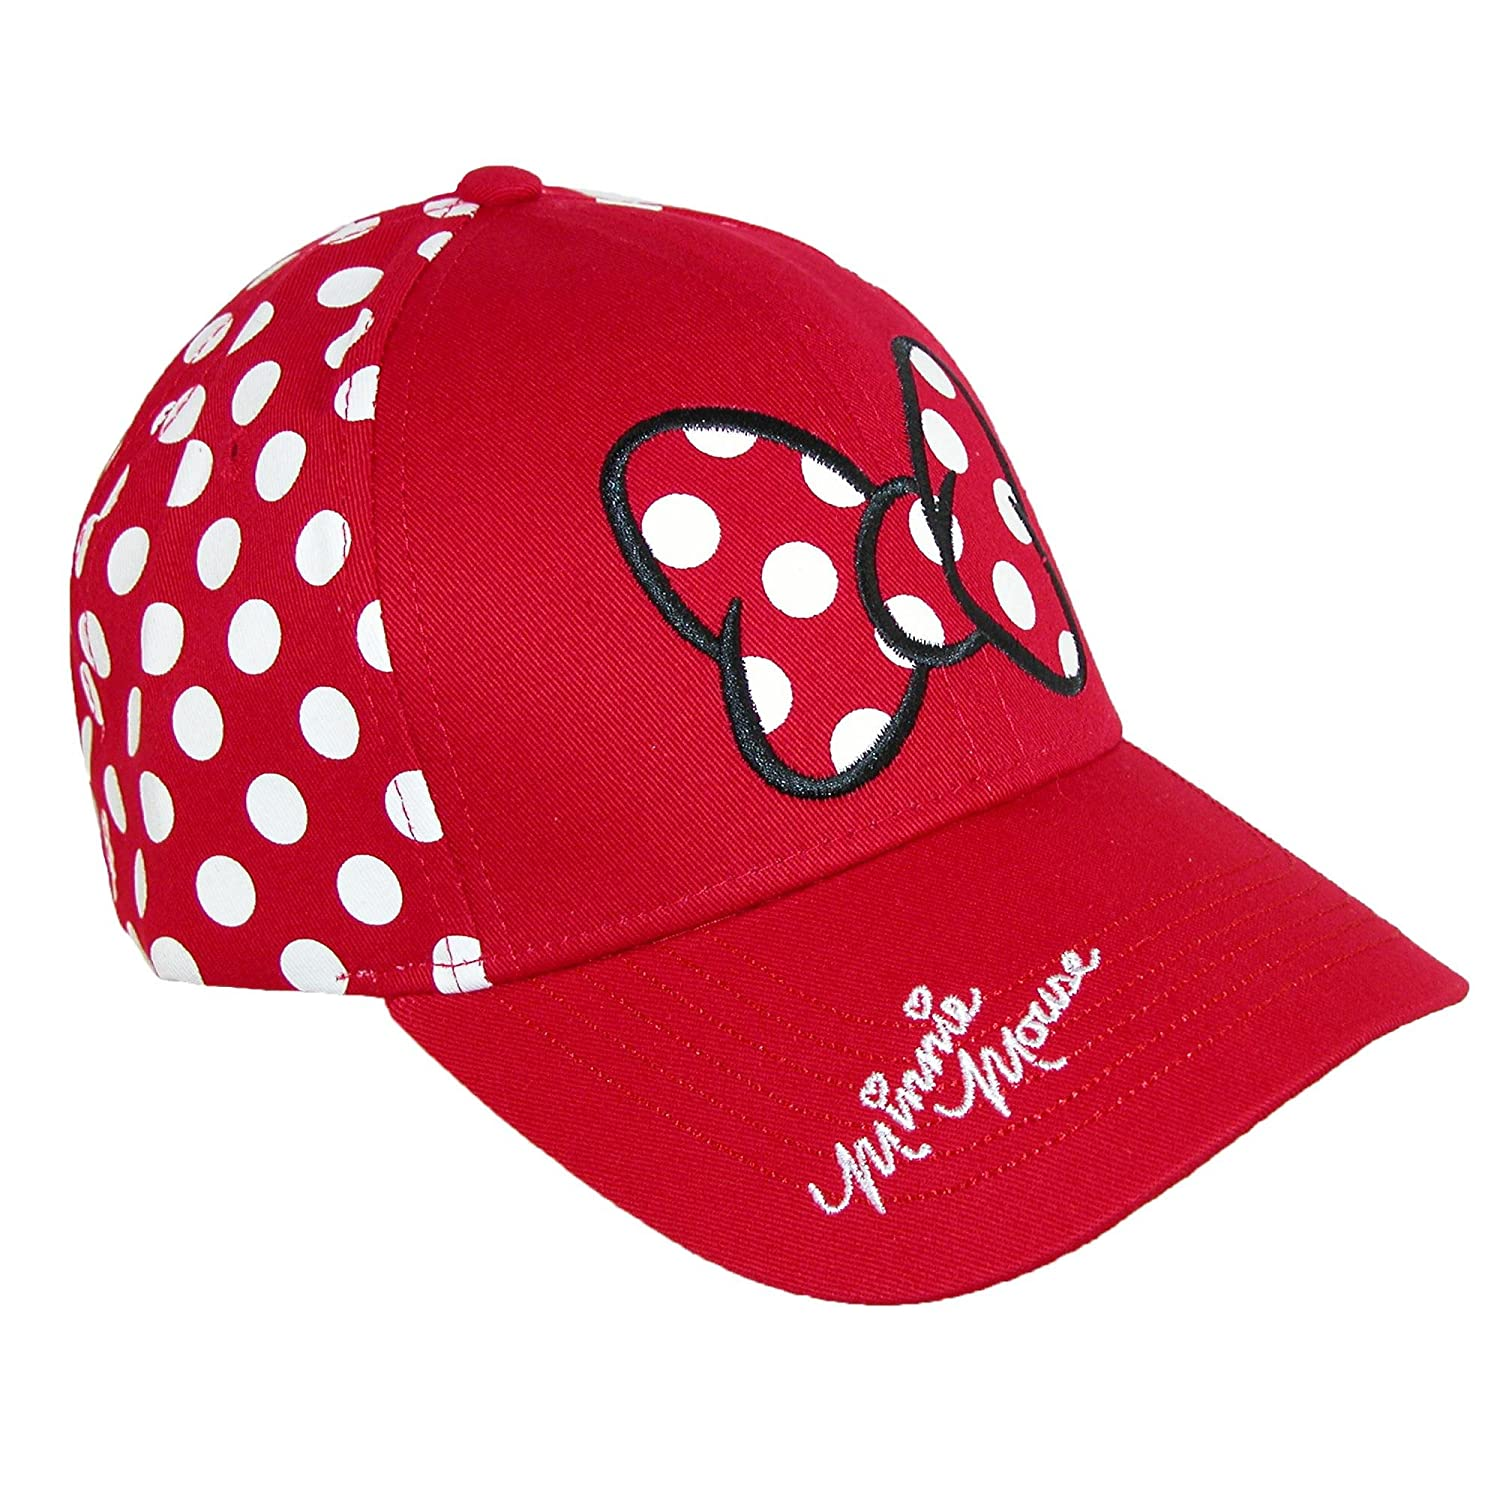 b9c9d996e Top1: Disney Women's Minnie Mouse Polka Dots Baseball Hat